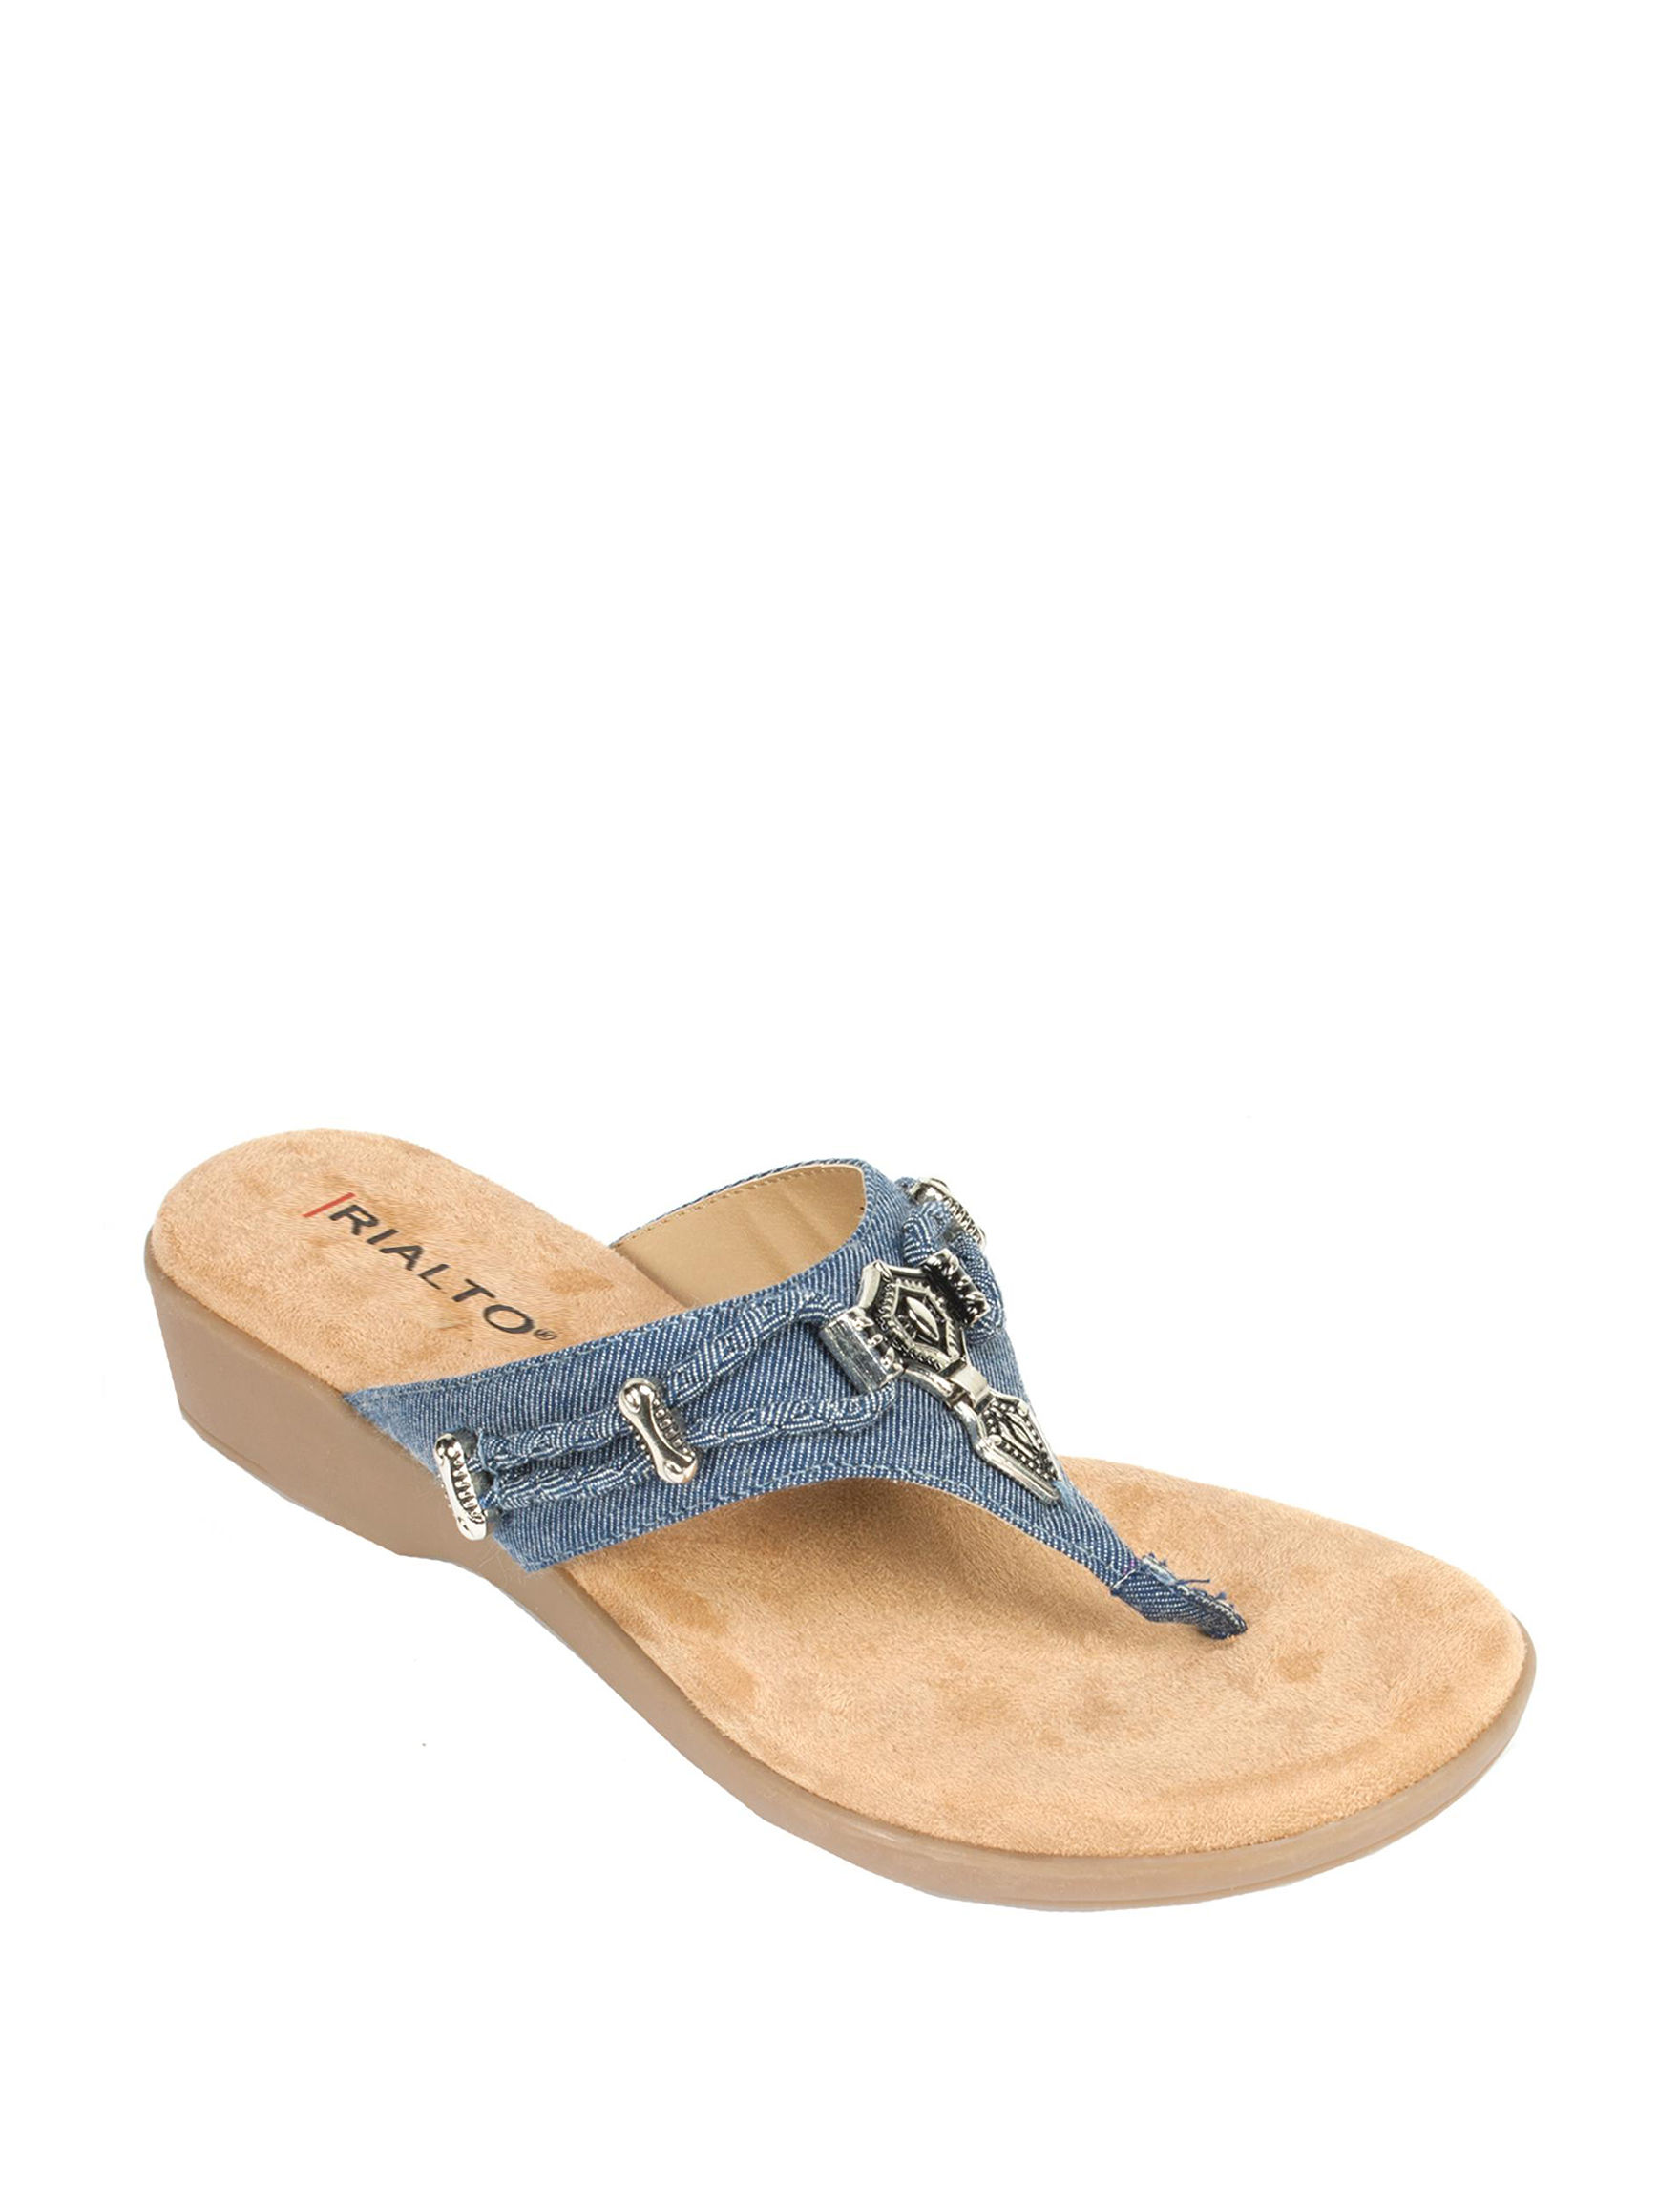 Rialto Denim Flat Sandals Flip Flops